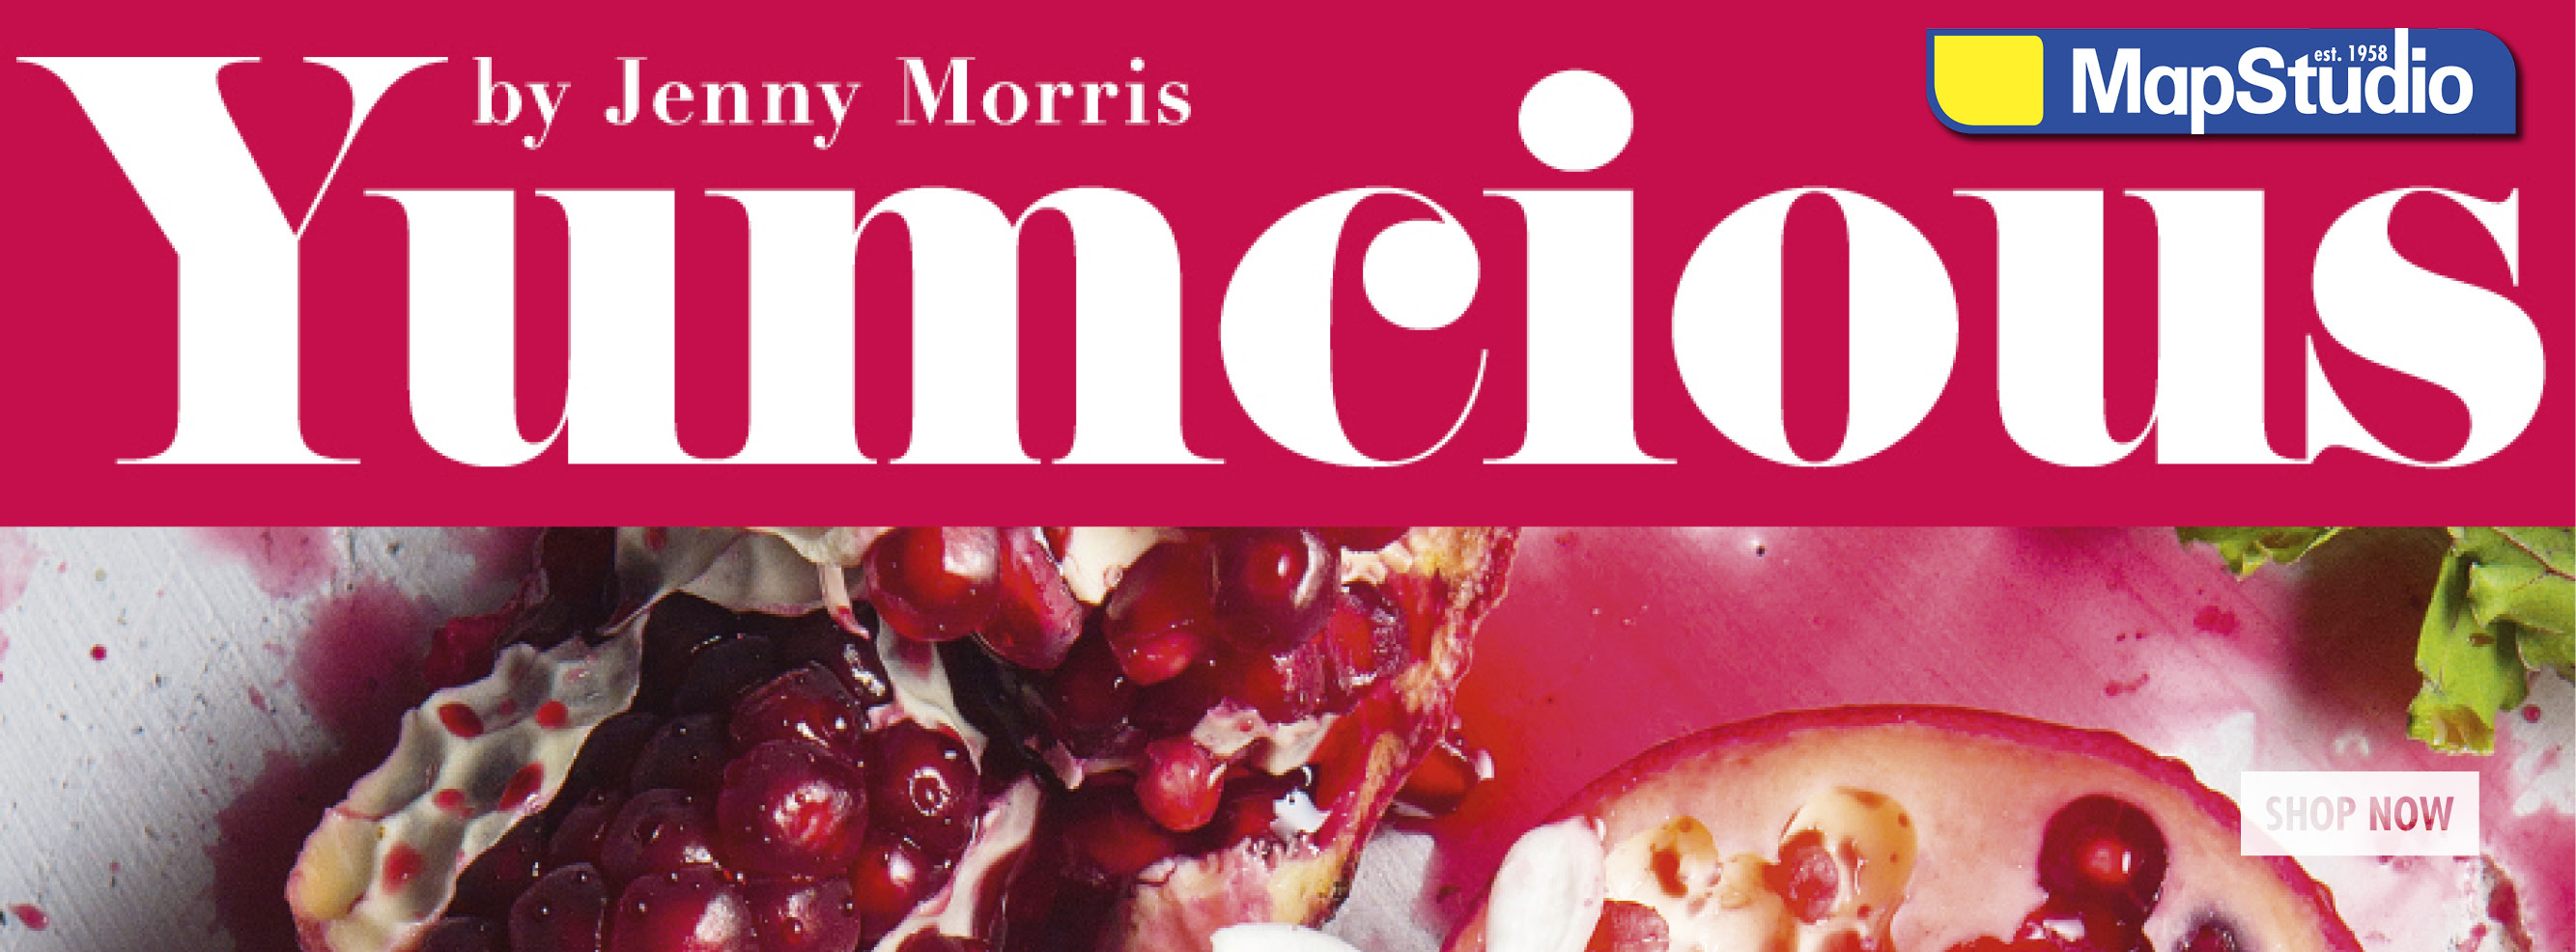 Yumcious by Jenny Morris